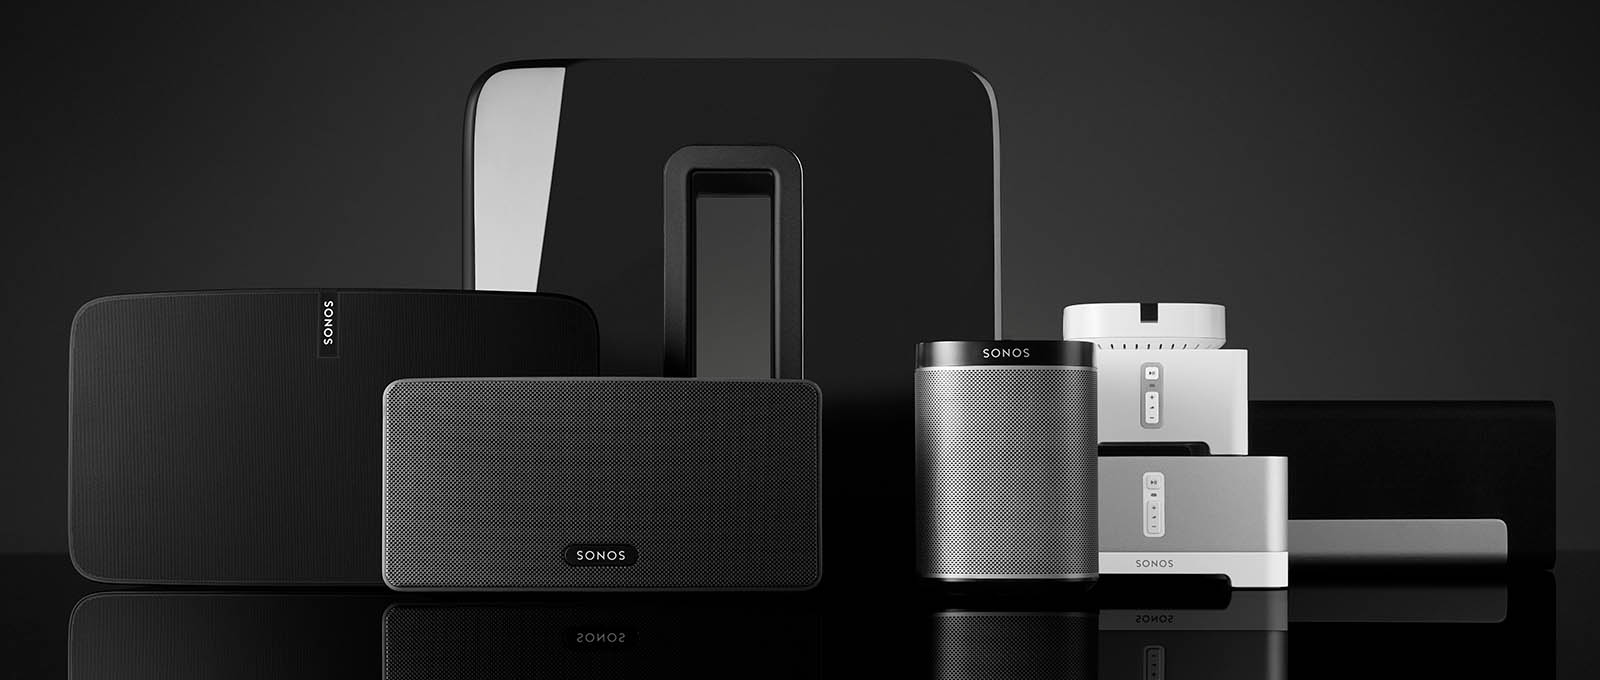 sonos installation services product line